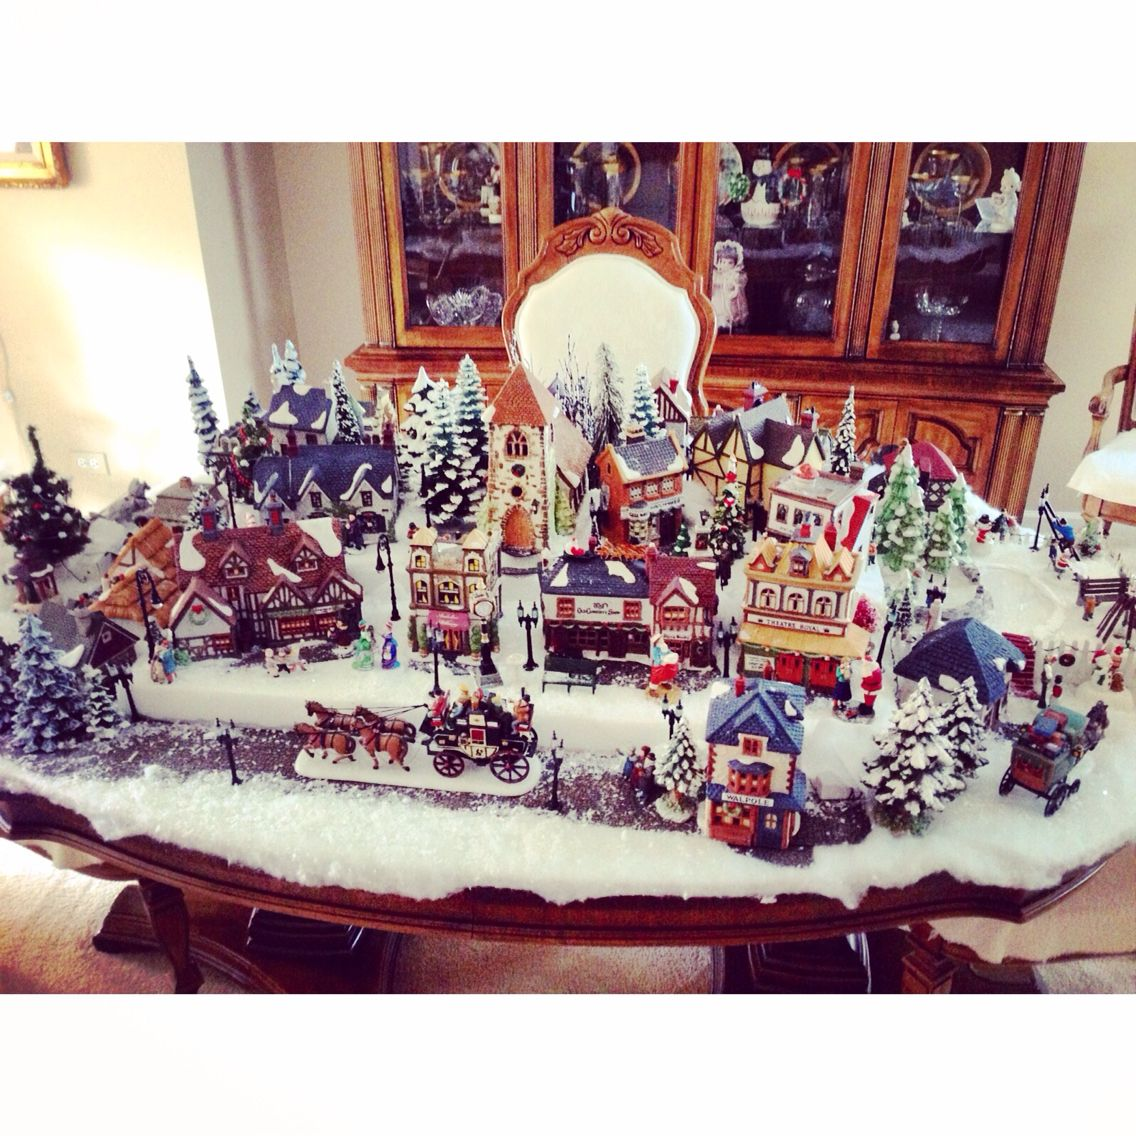 My grandmothers amazing christmas village. Took her years to get it this big//detailed!